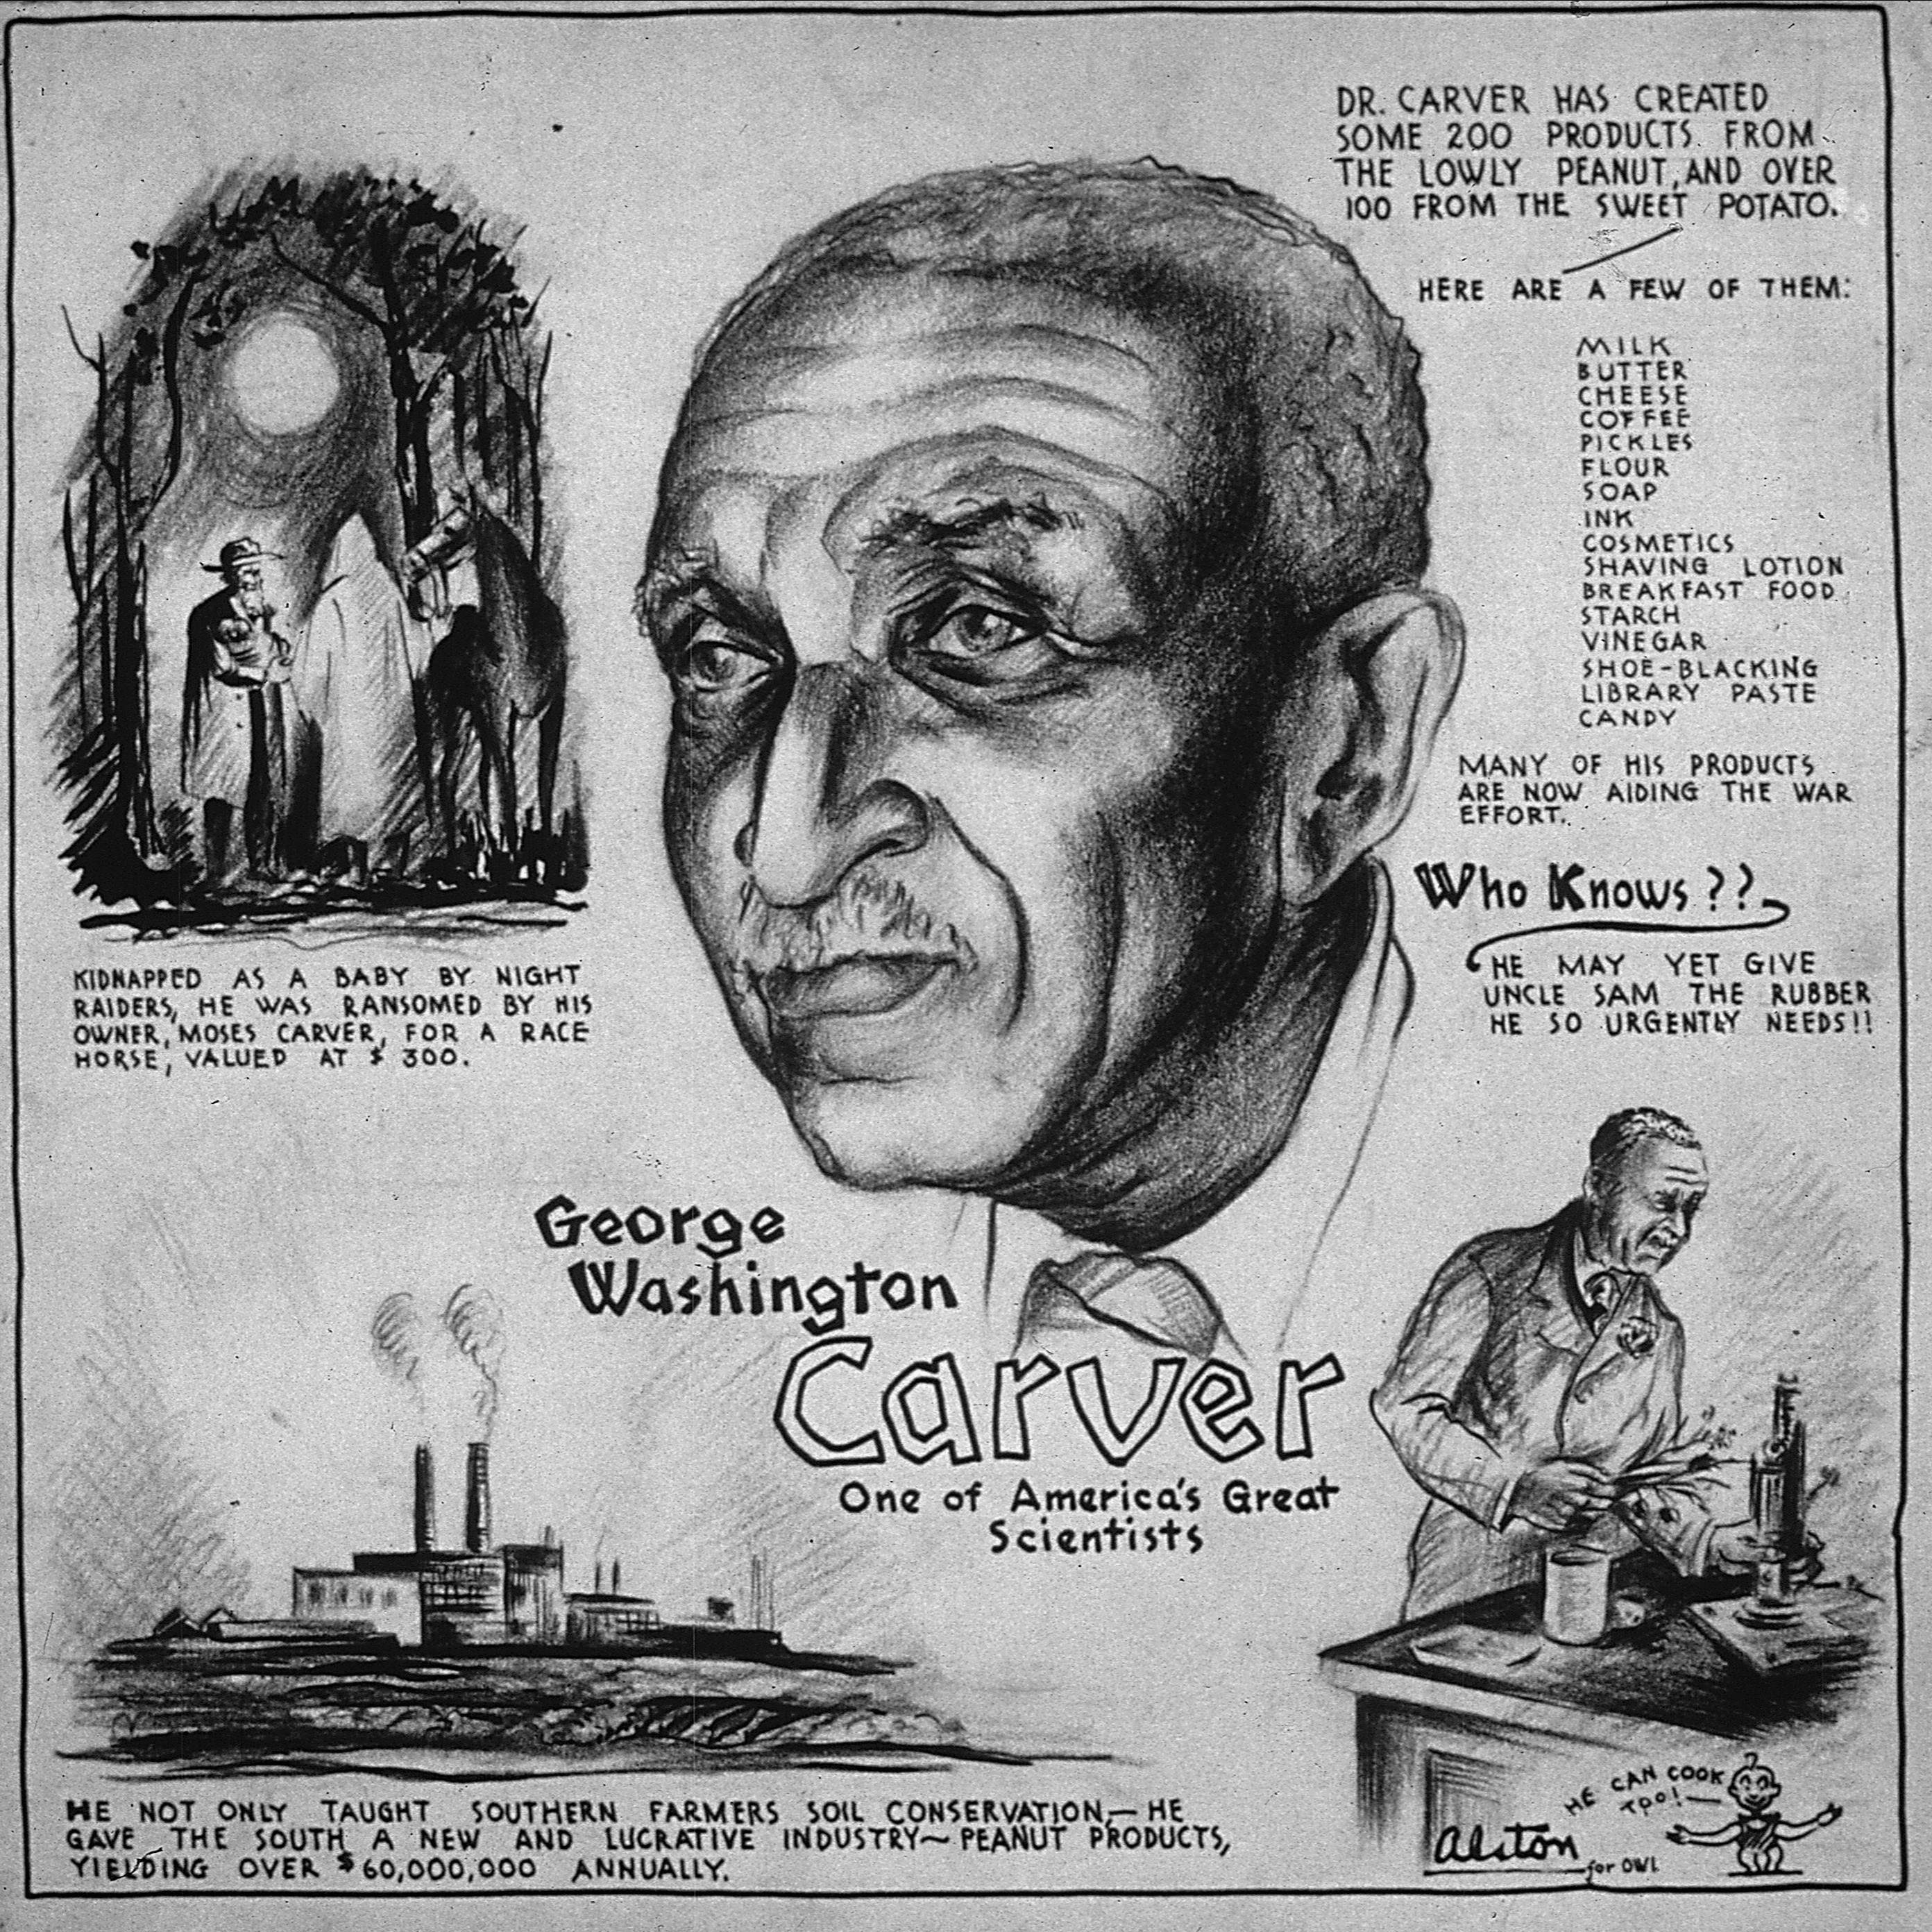 an introduction to the life of george washington carver